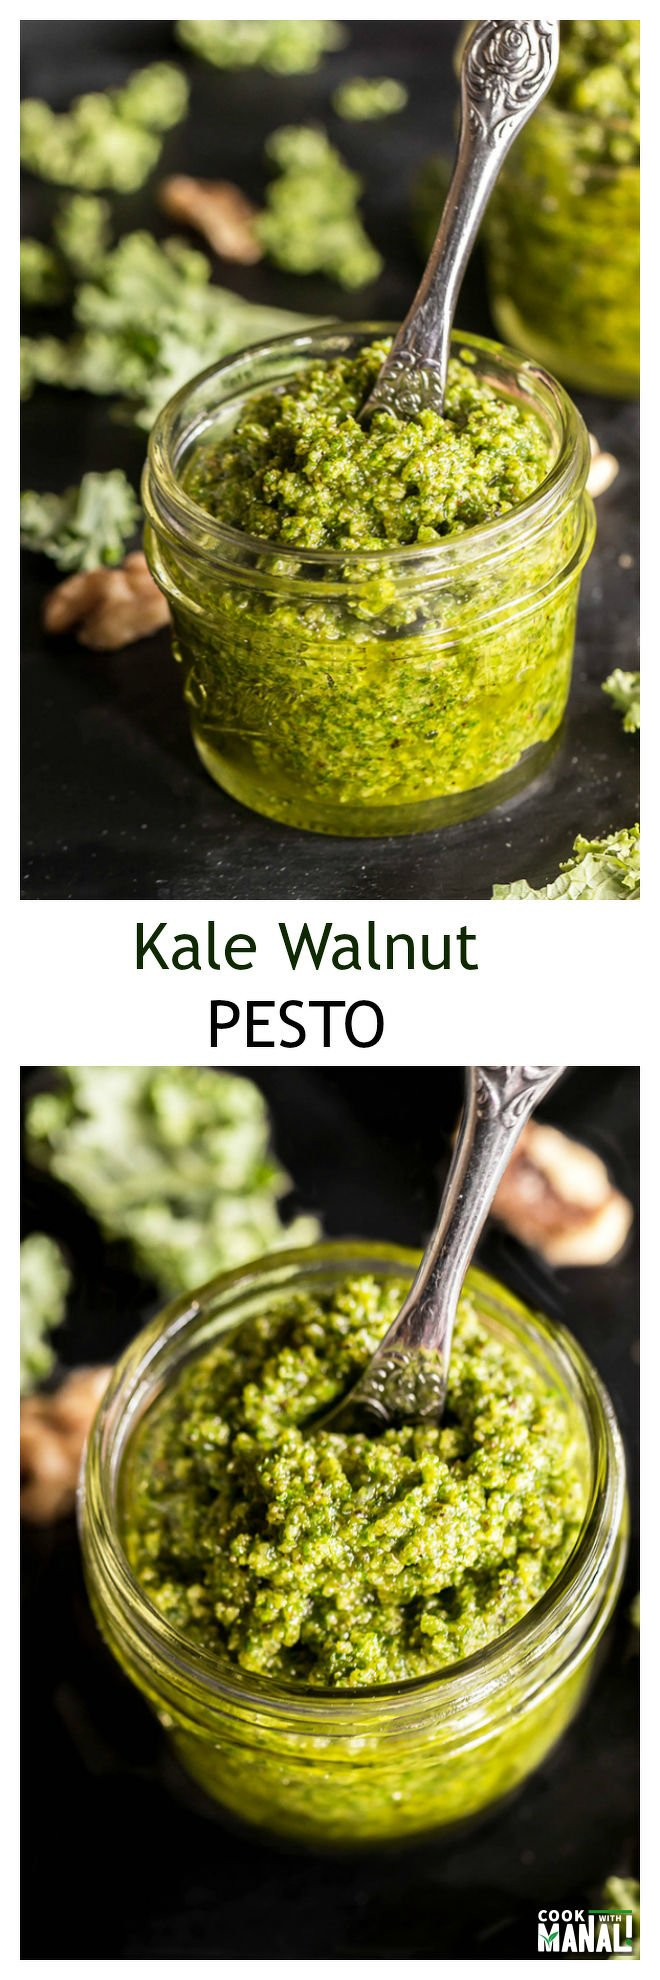 kale-walnut-pesto-collage